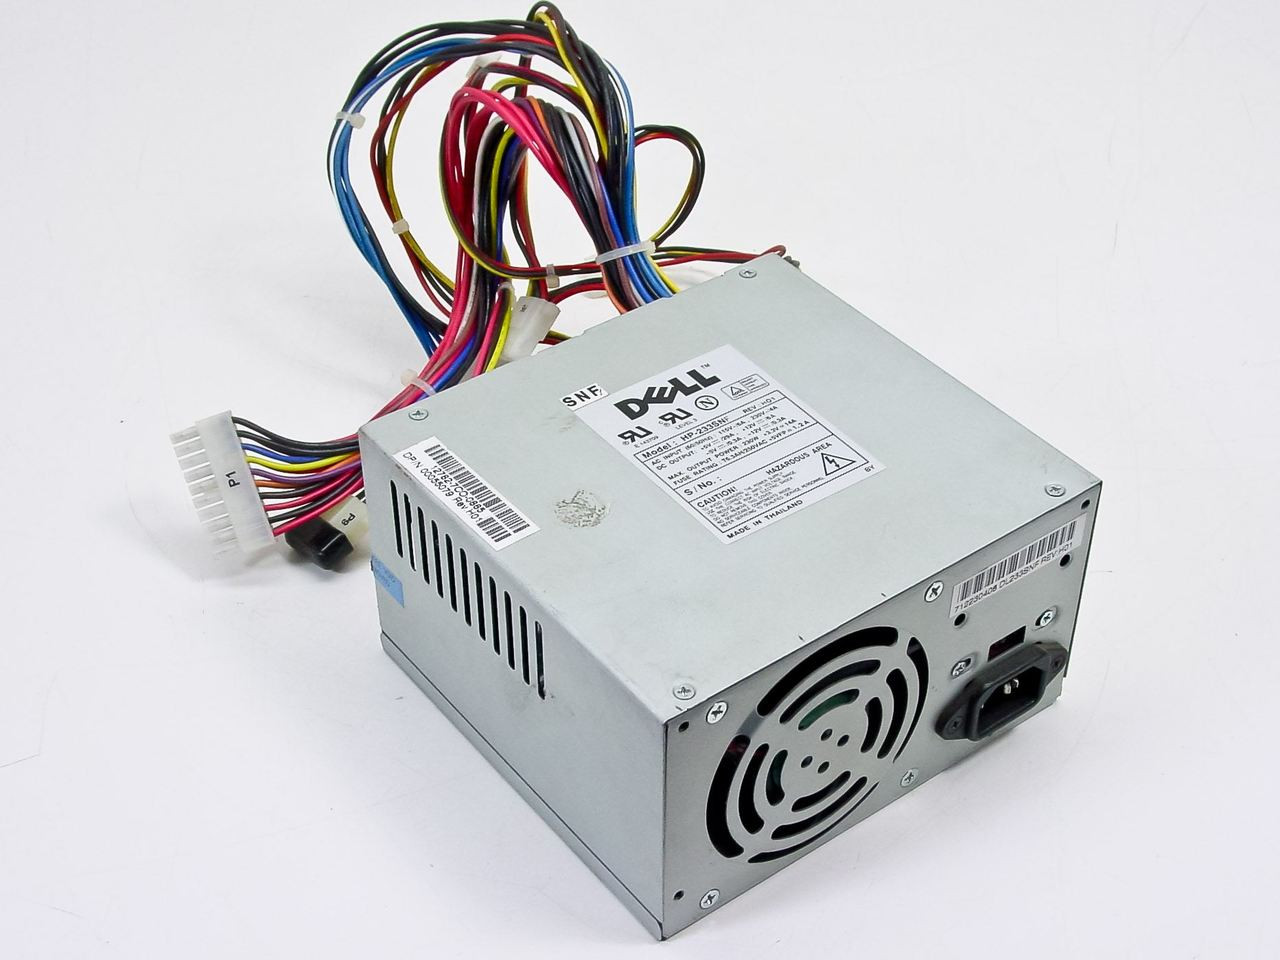 dell power supply hp 233snf 55079 1.39__89596.1489997310?c=2 dell 55079 power supply hp 233snf recycledgoods com  at gsmportal.co